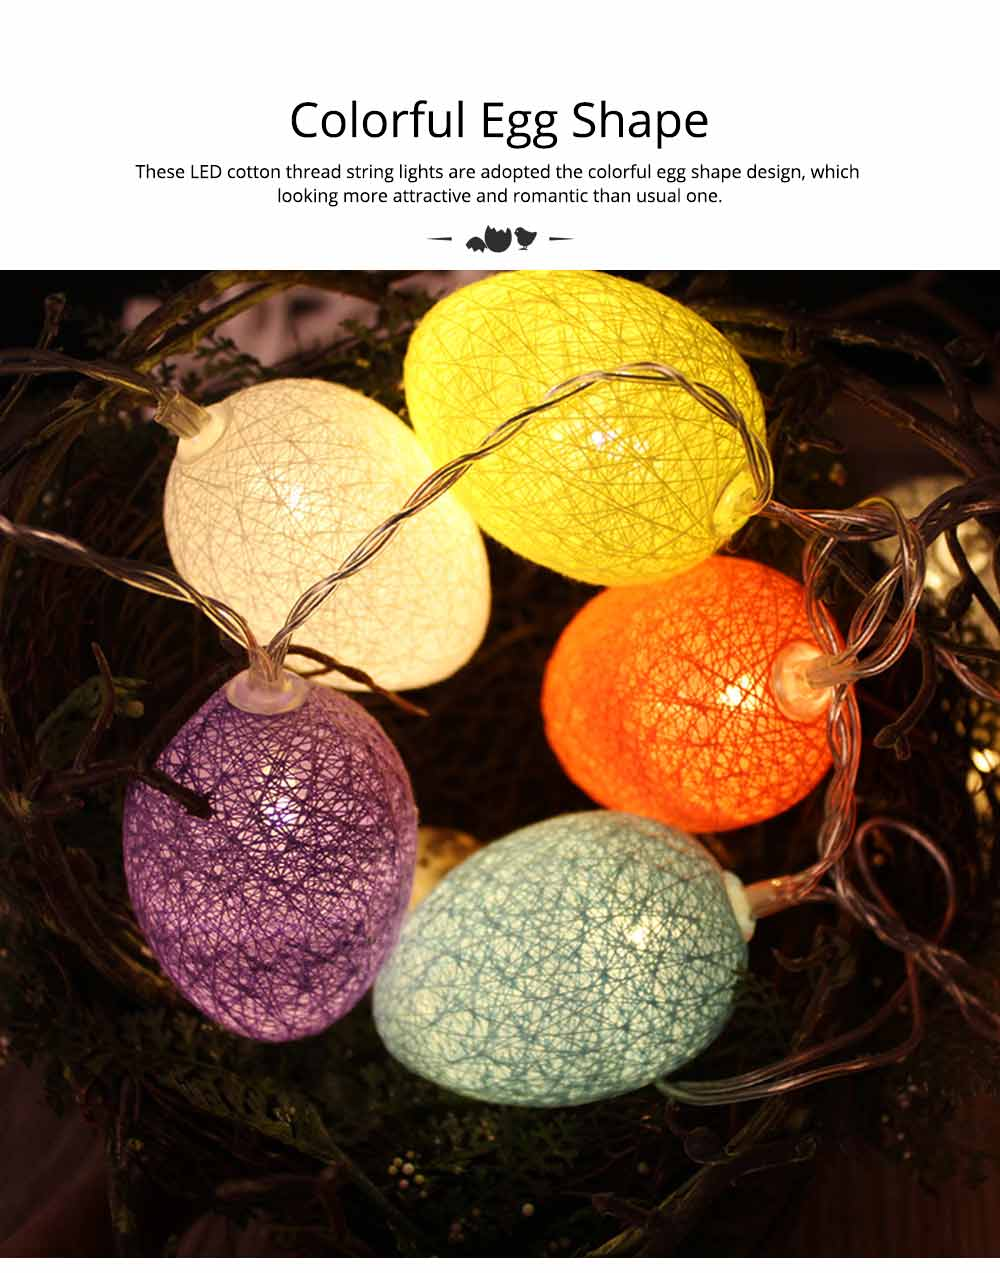 Easter Egg String Lights, Cotton Thread Battery Operated LED String Egg Lamp Home Party Decor 2